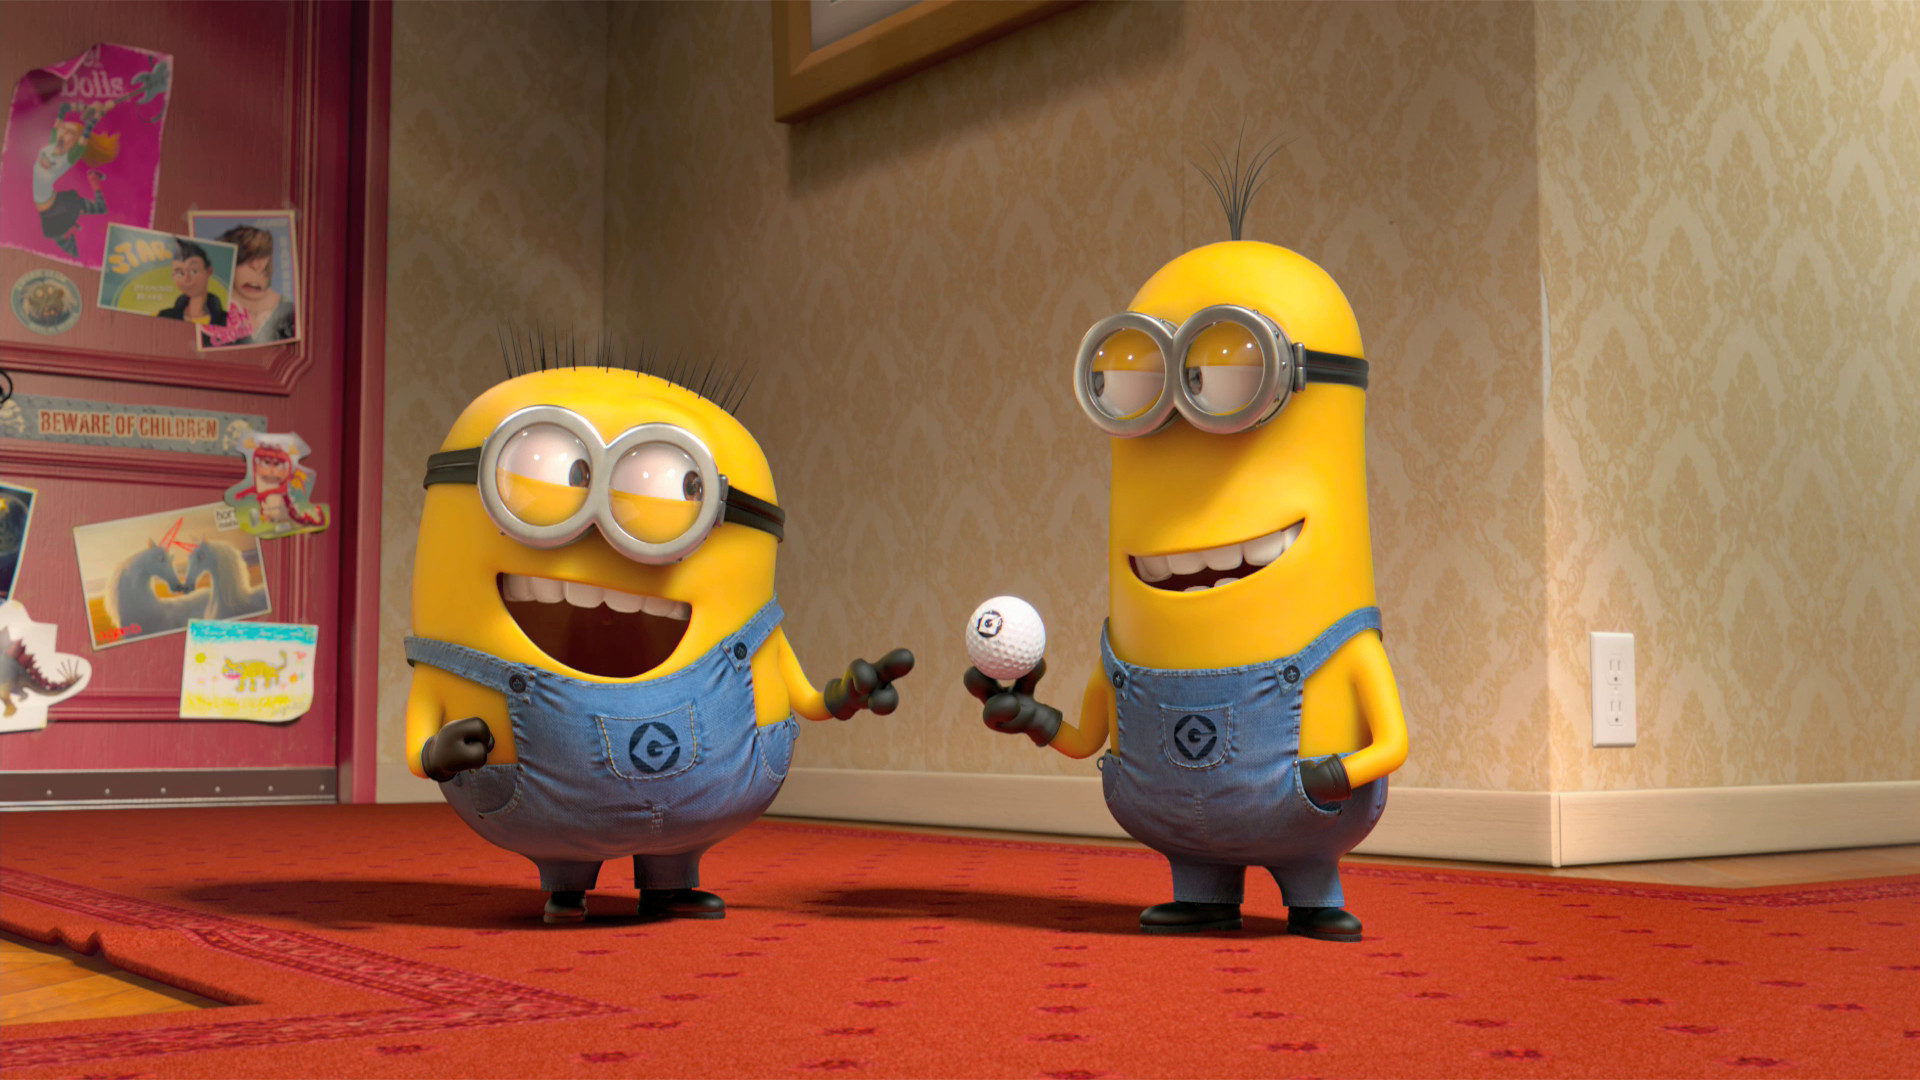 Minions Wallpapers HD Wallpapers 1440×1280 HD Minion Wallpapers .